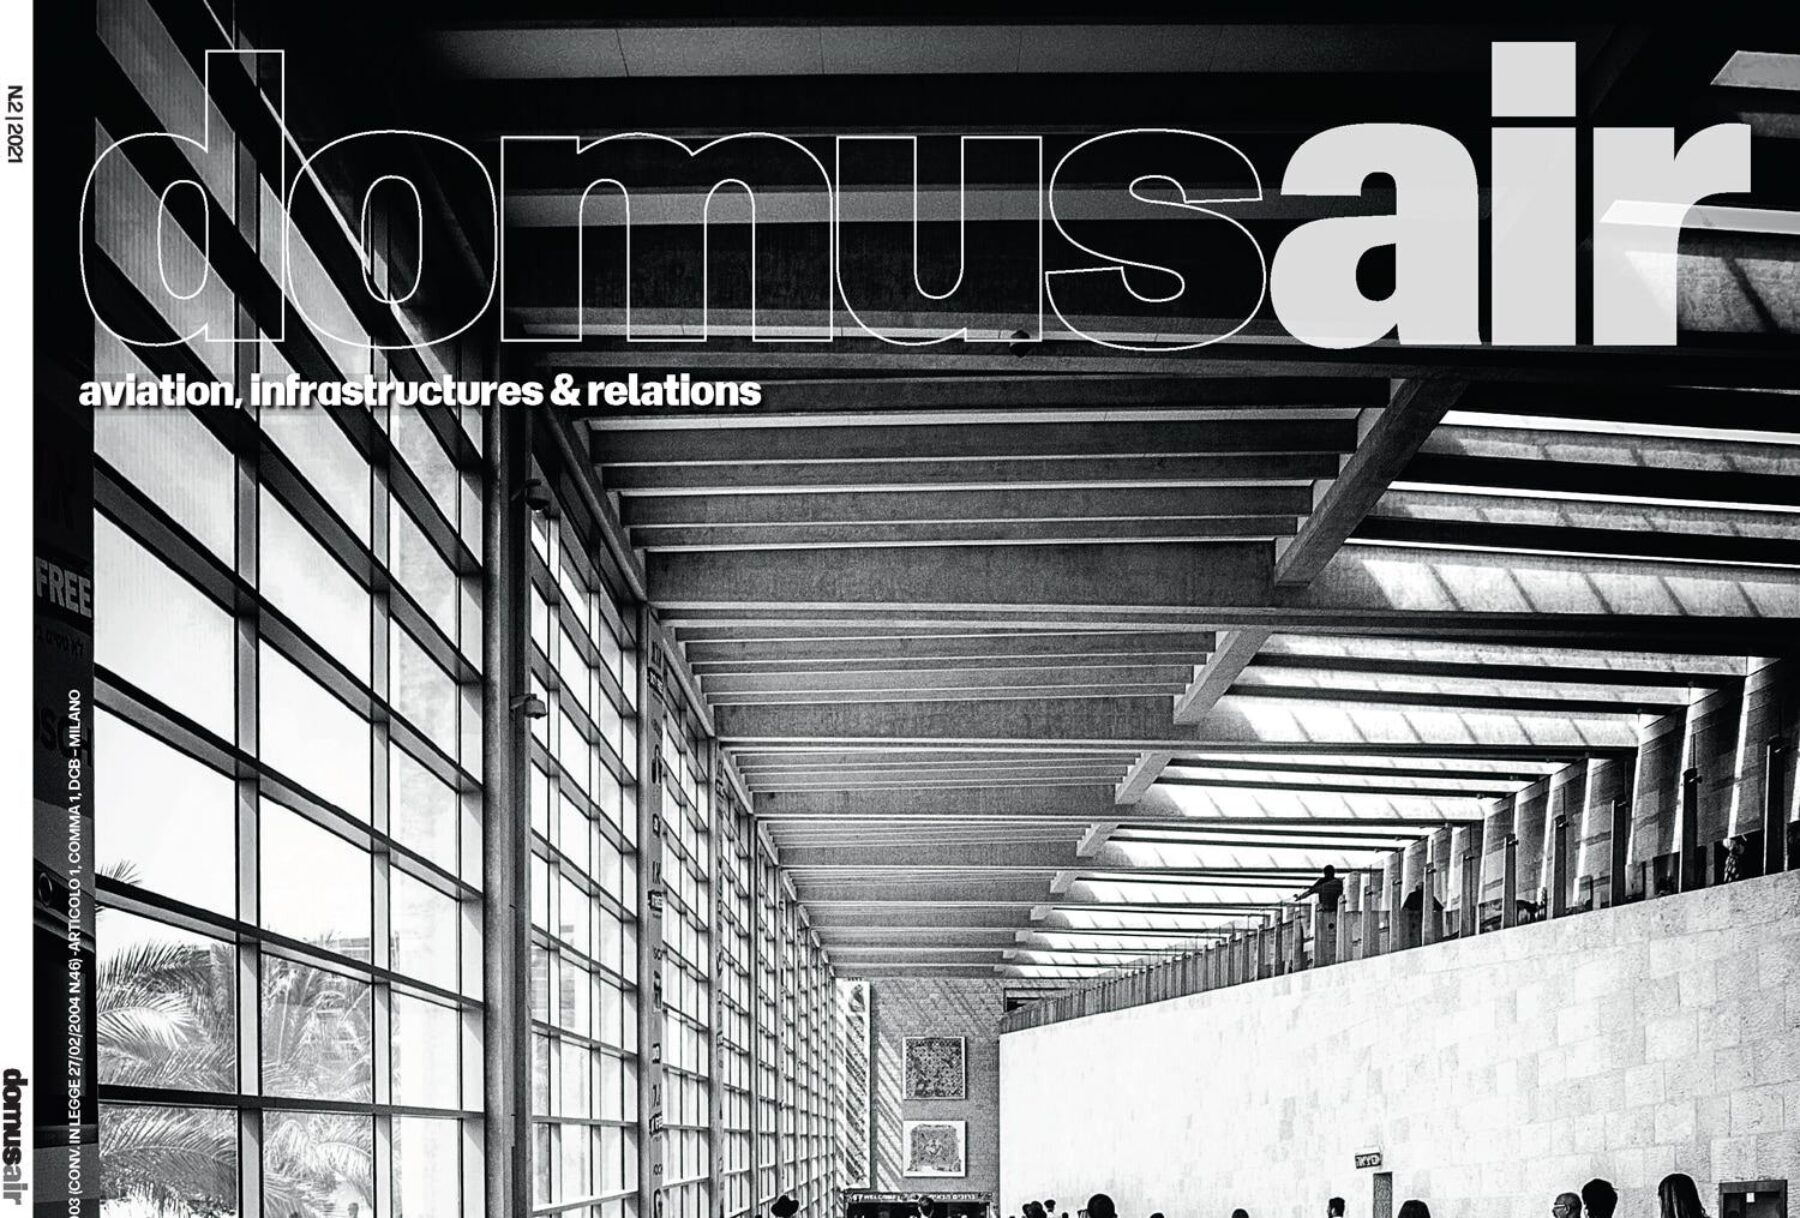 Constructing workable scenarios - DomusAir No.2 is now available